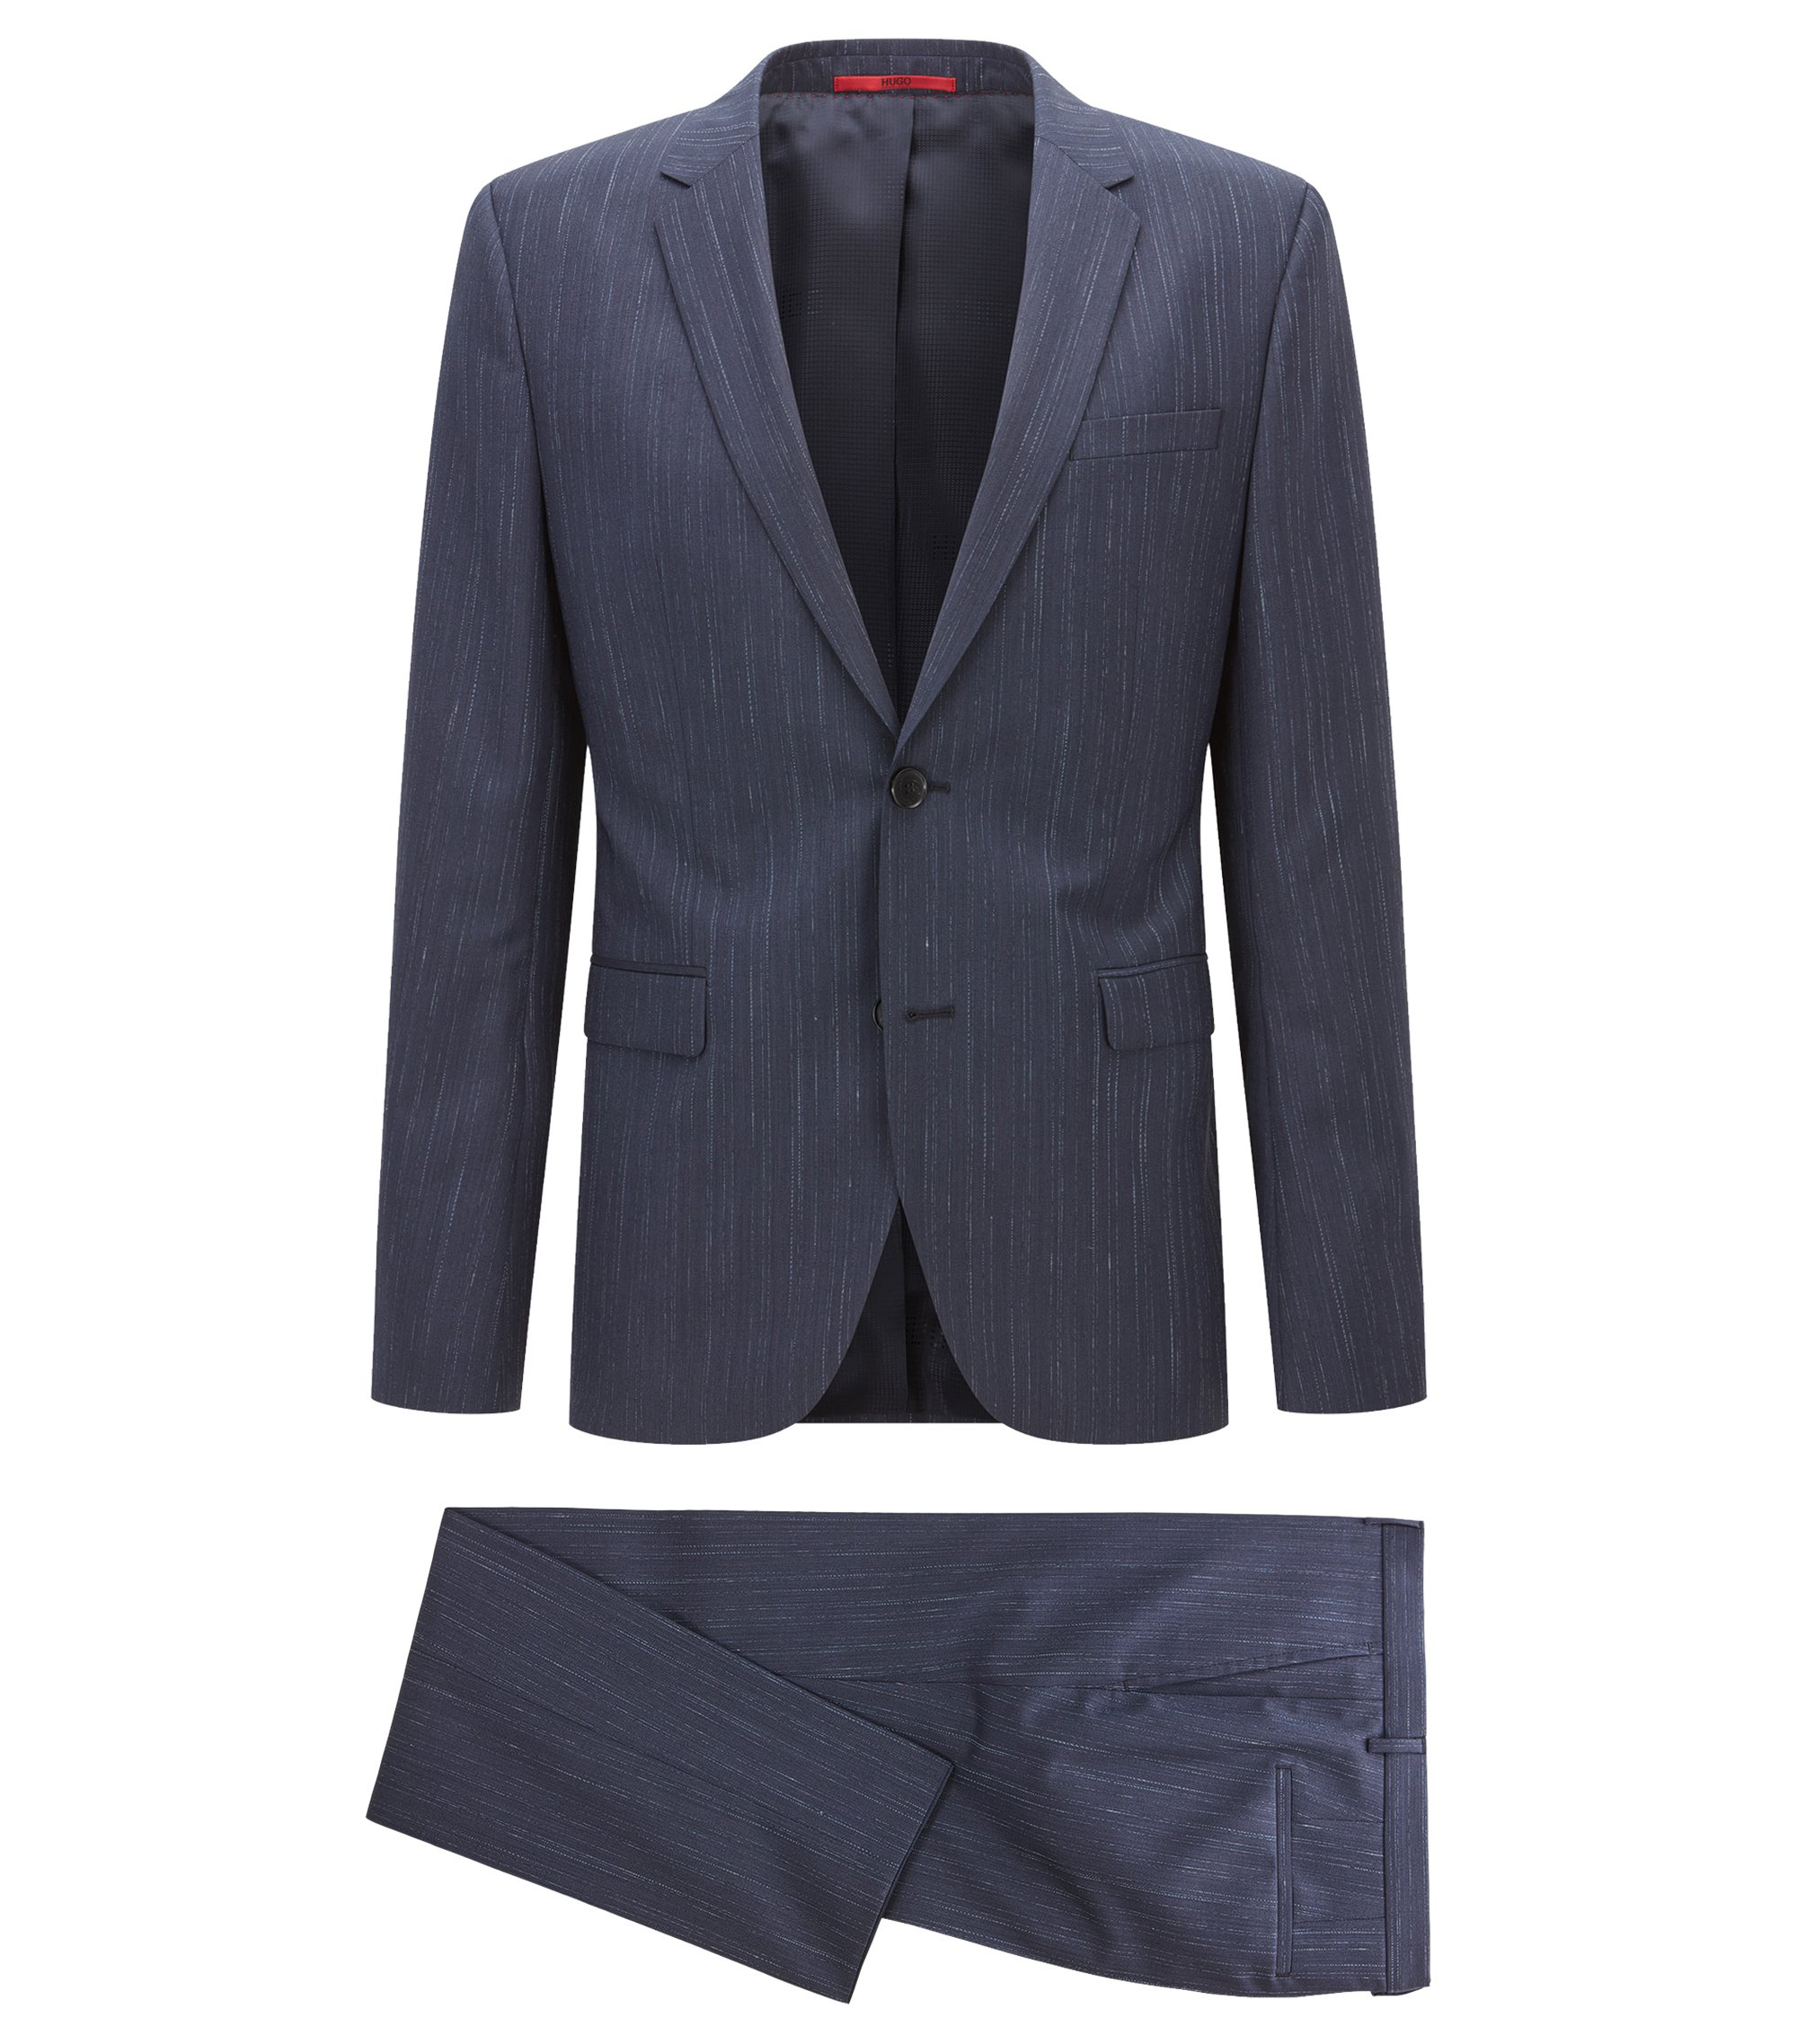 Italian Super 110 Wool Suit, Extra Slim Fit | Astian/Hets, Dark Blue